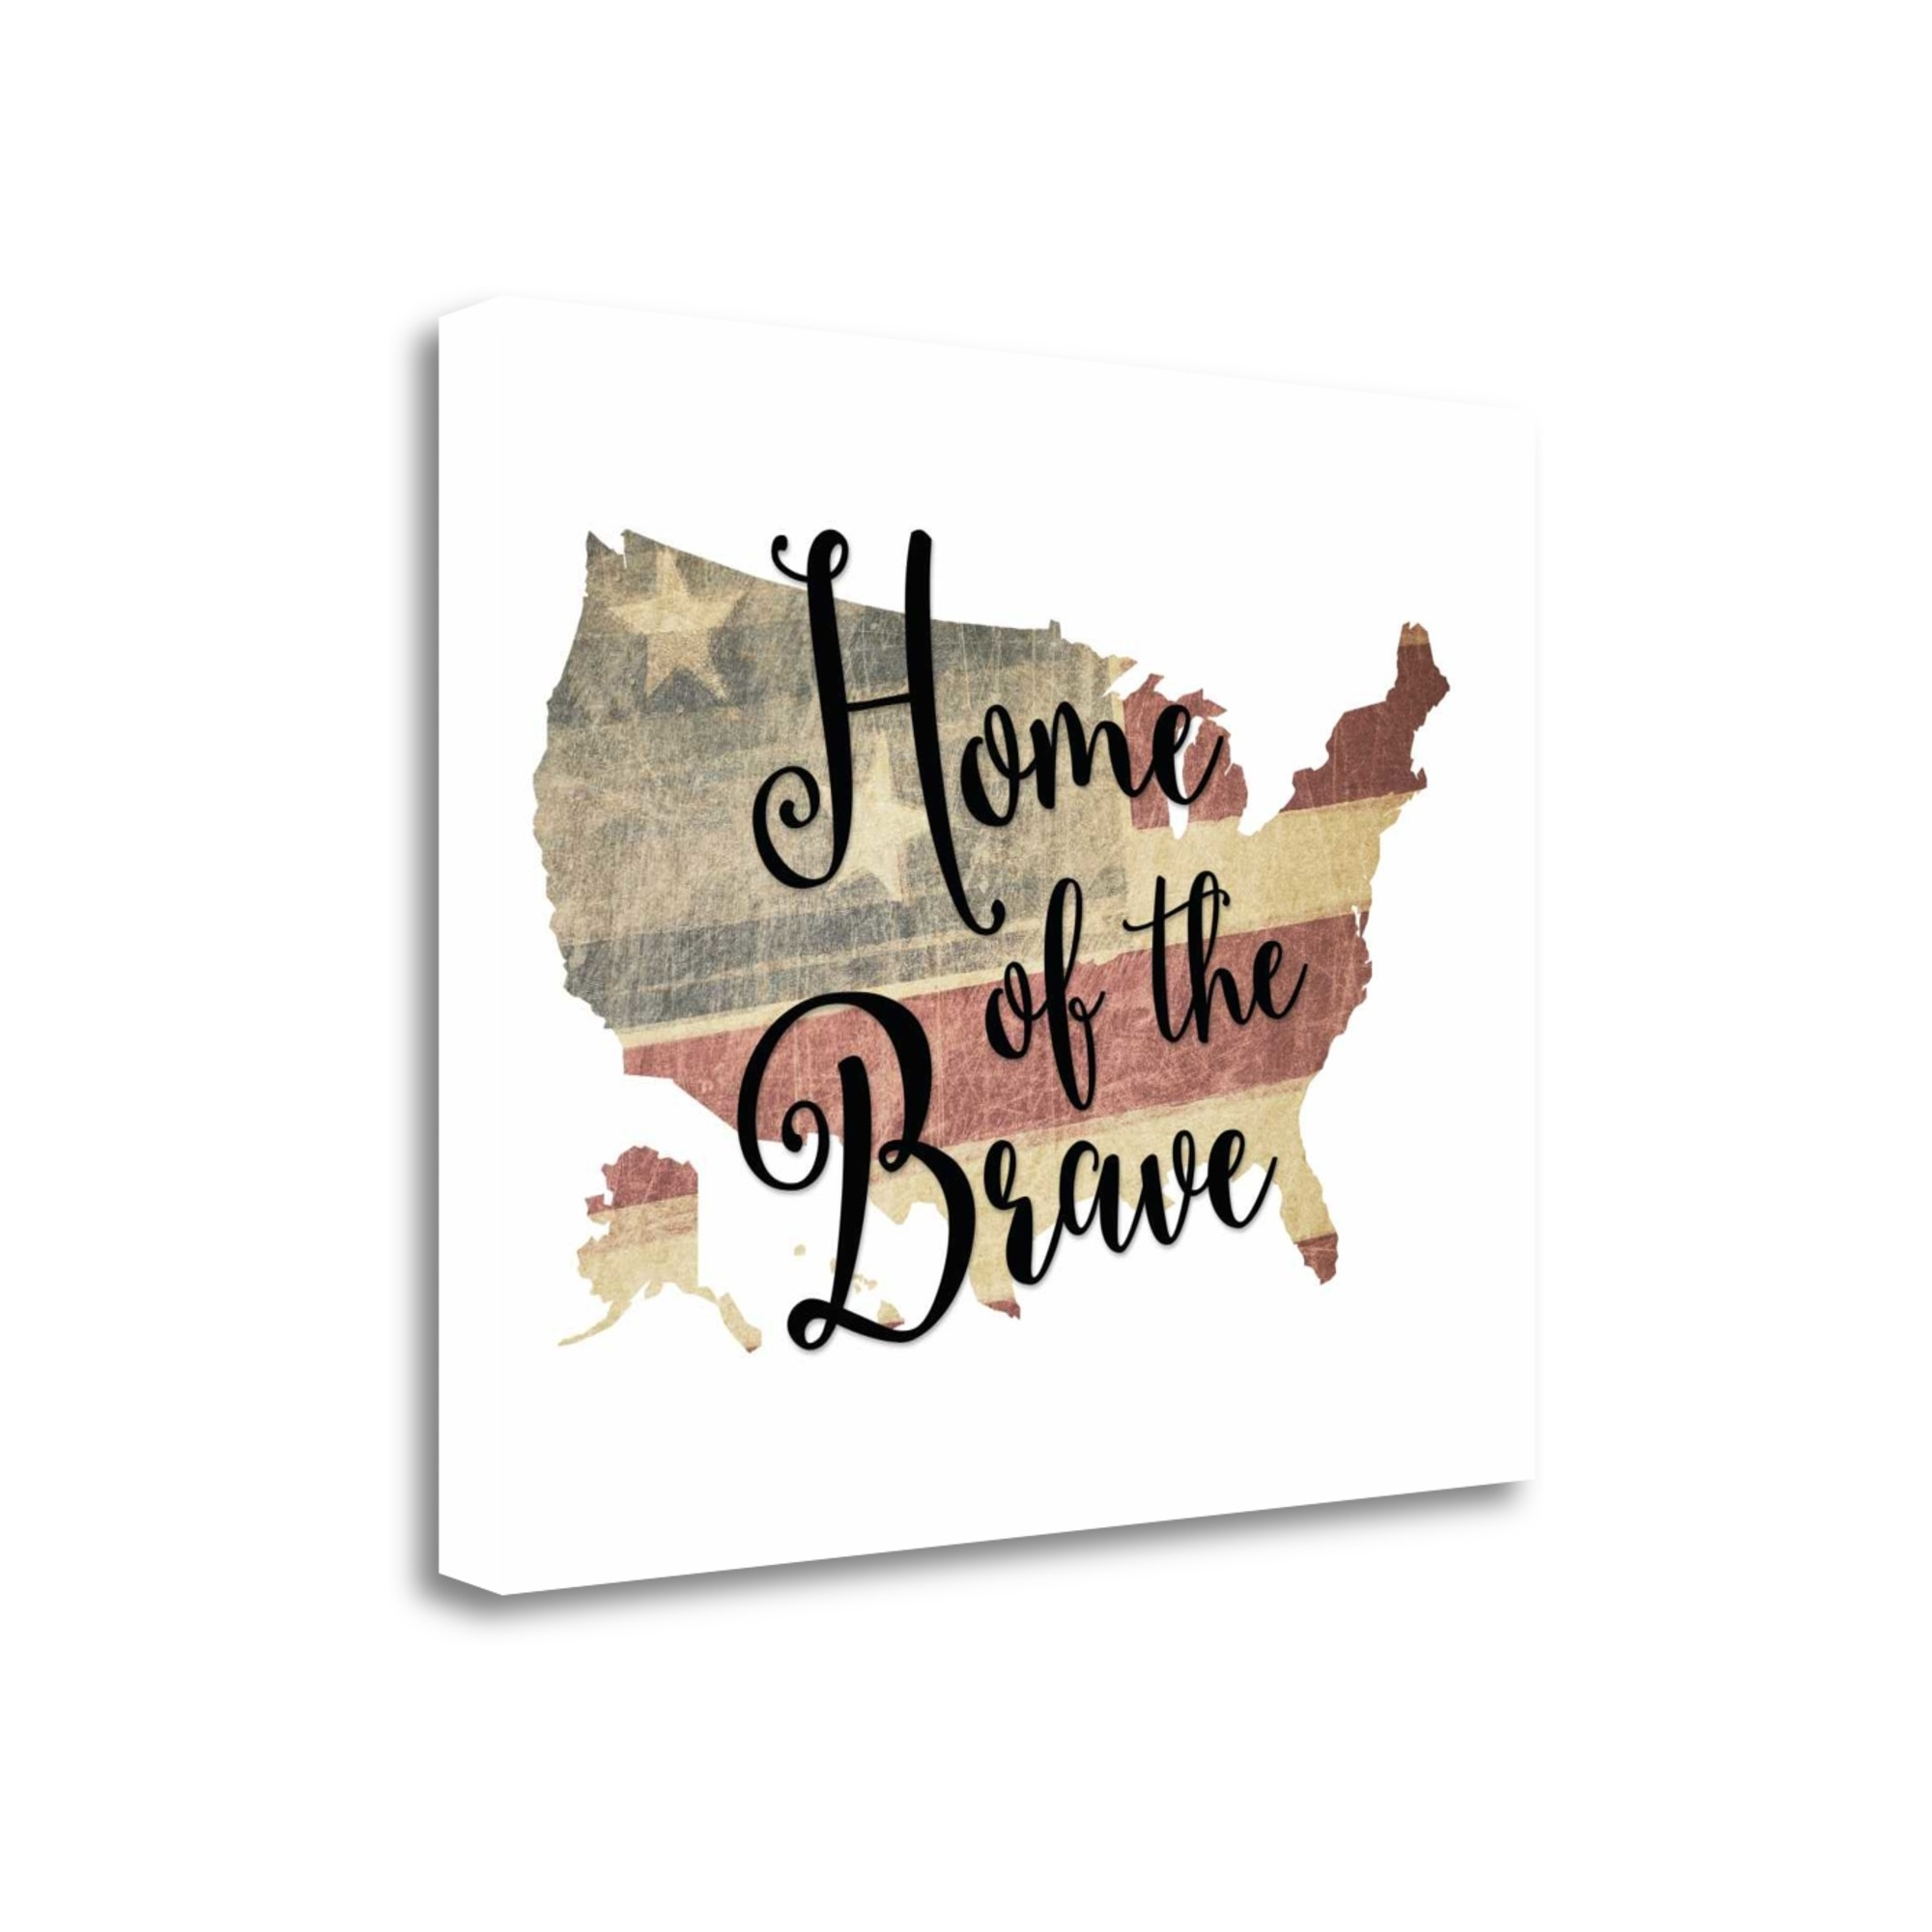 "Home Of The Brave By Tara Moss, 28"" x 22\"" Fine Art Giclee Print on Gallery Wrap Canvas, Ready to Hang"